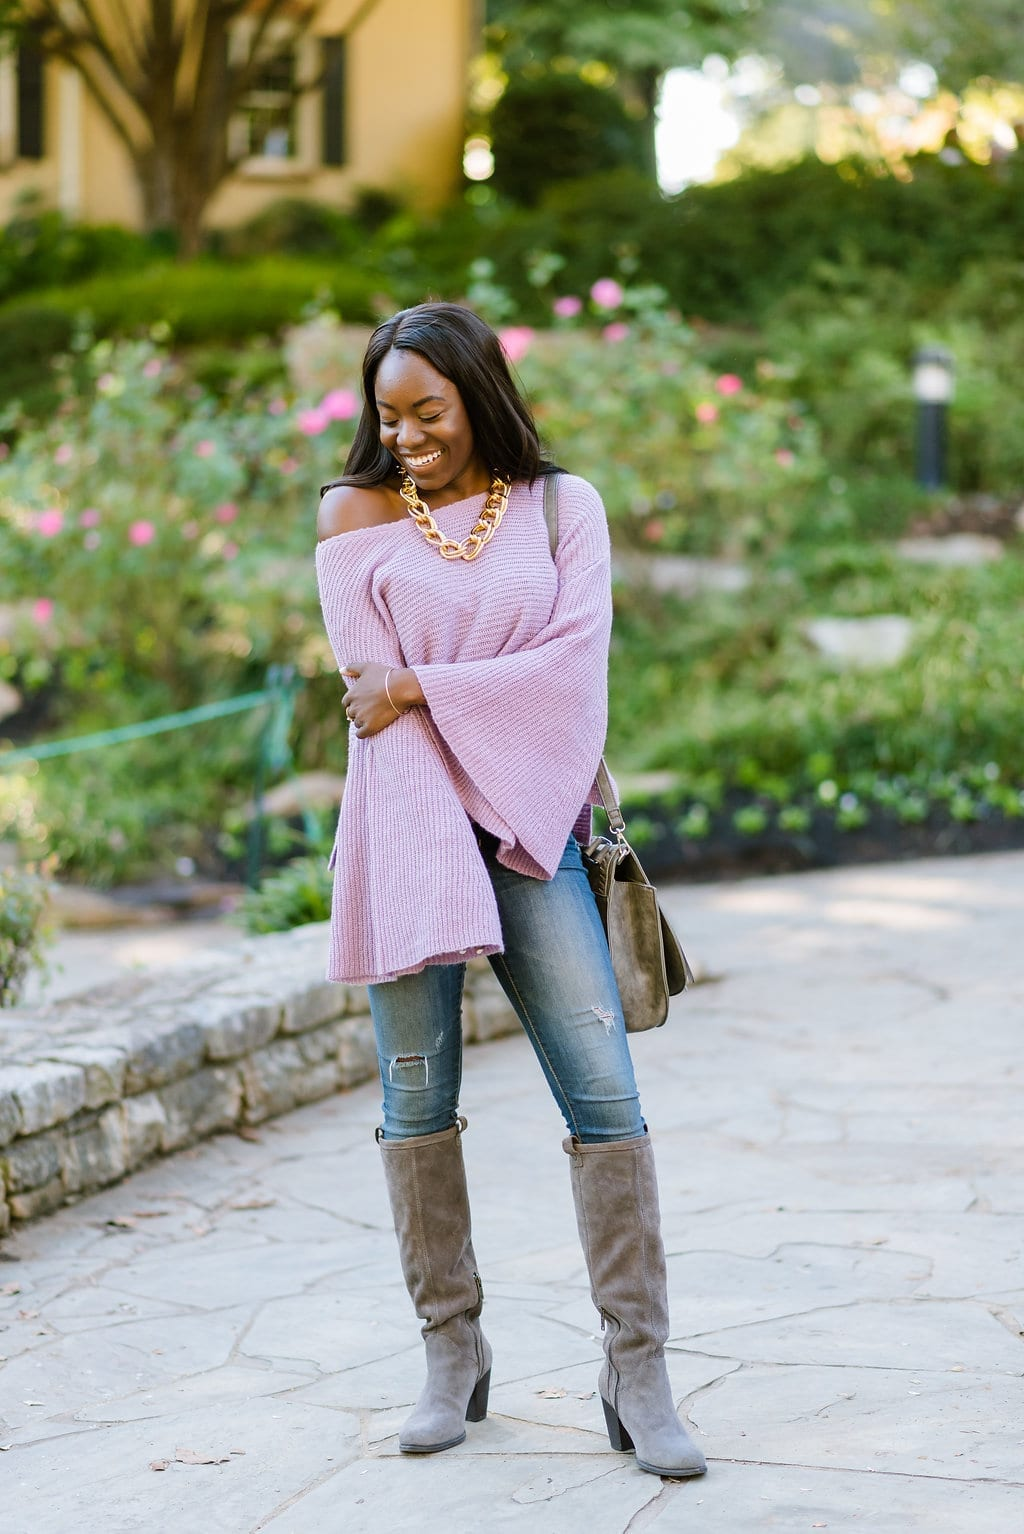 ec79bf86af11 Black fashion blogger Tomi Obebe talks about the diversity problem in  blogging and what we can